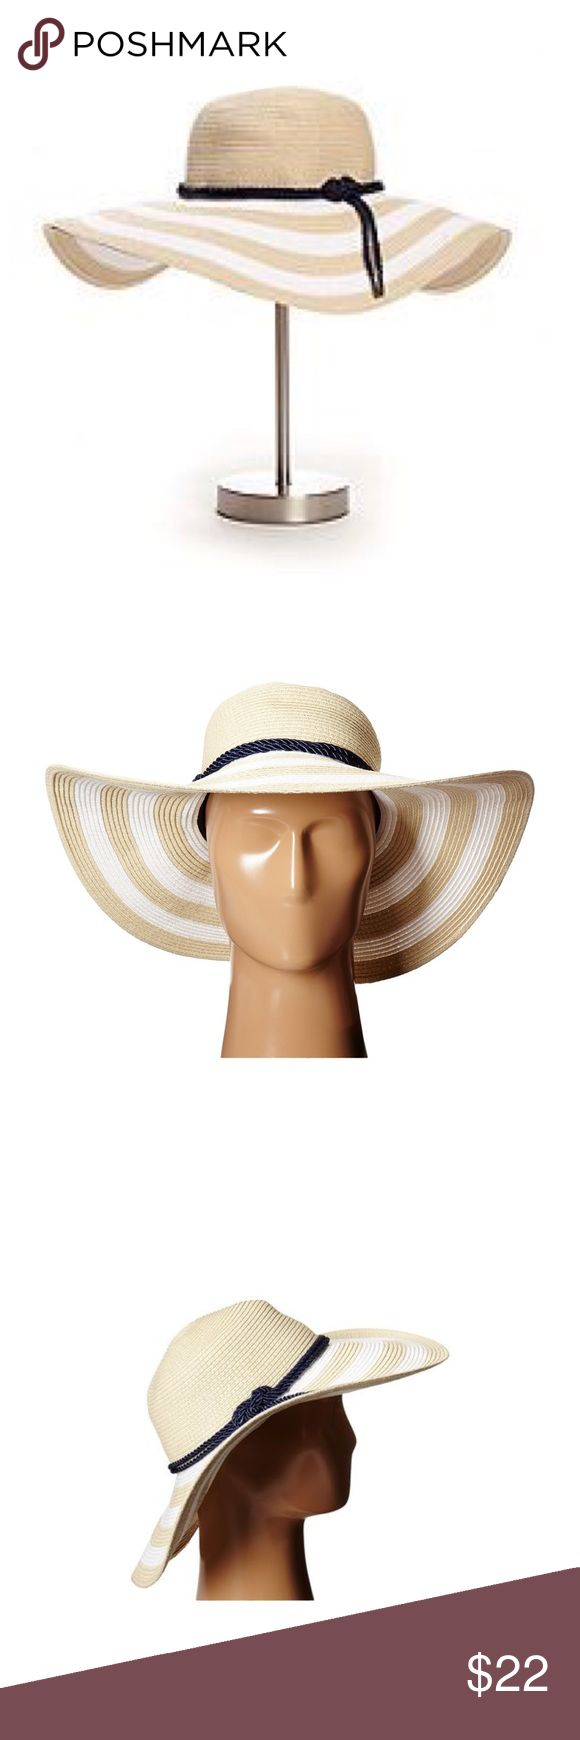 """🆕 Betmar Sunhat New without tag...Introducing the Betmar Demetria Sunhat. This is the perfect hat for the beach. The wide brim gives you great sun protection and it will look great with any solid color bathing suit. The contrast color hat band makes the hat stand out from the rest.   Approx. 4"""" Crown 5"""" Brim   Made of: 88% Toyo Straw (Paper) 12% Polyester   UPF 50+ Sun Protection Rope Hatband Betmar Side Pin Elastic Sweatband Unlined Packable Betmar Accessories Hats"""